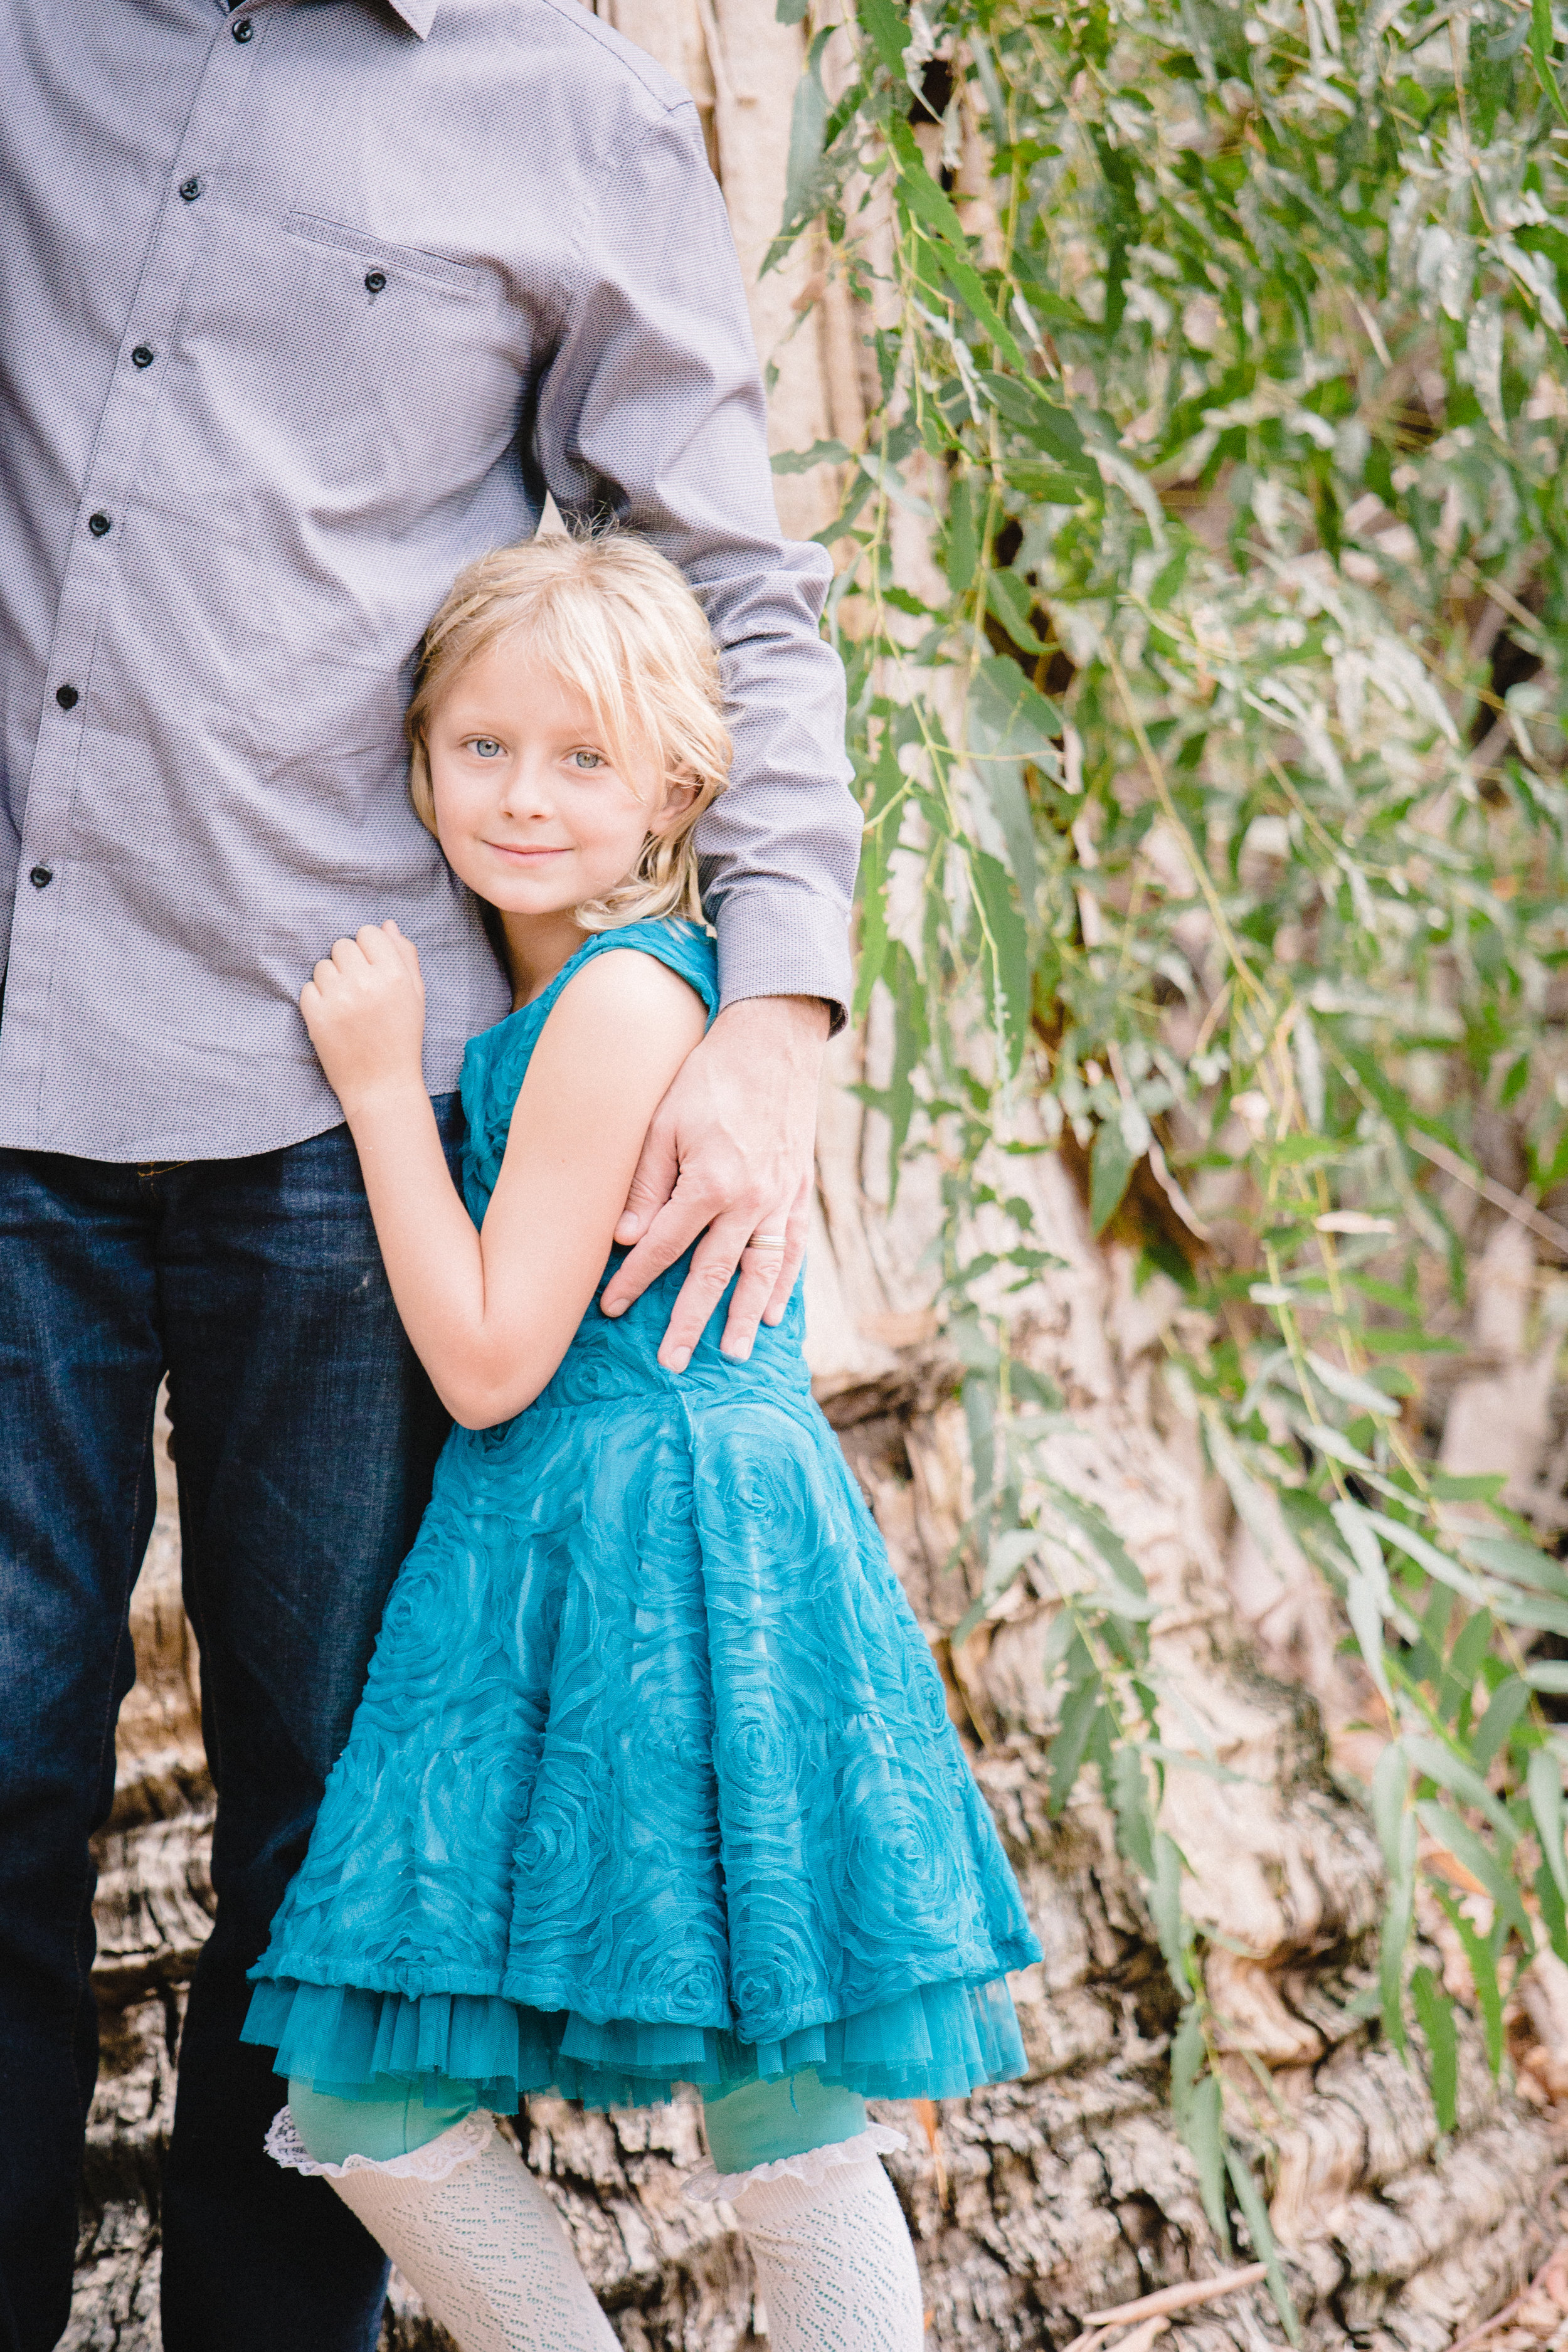 ALacey_Michelle_Photography_LR-5706.jpg